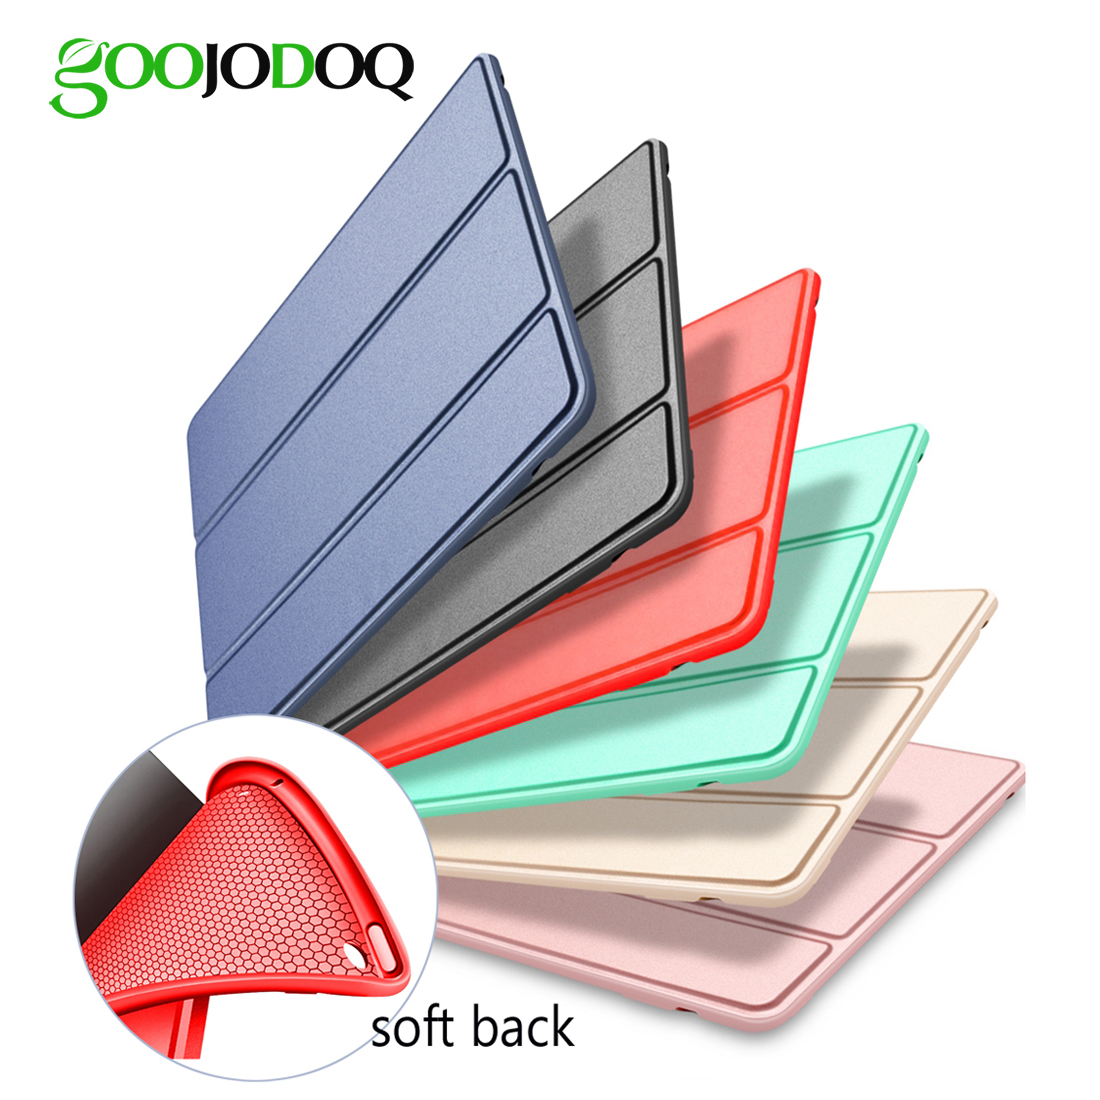 For iPad Air 2 Air 1 Case Silicone Soft Back Slim Pu Leather Smart Cover for Apple iPad Air Case Sturdy Stand Auto Sleep / Wake luxury ultra slim magnetic smart flip stand pu leather cover case for apple ipad 6 air 2 retina display wake stylus pen